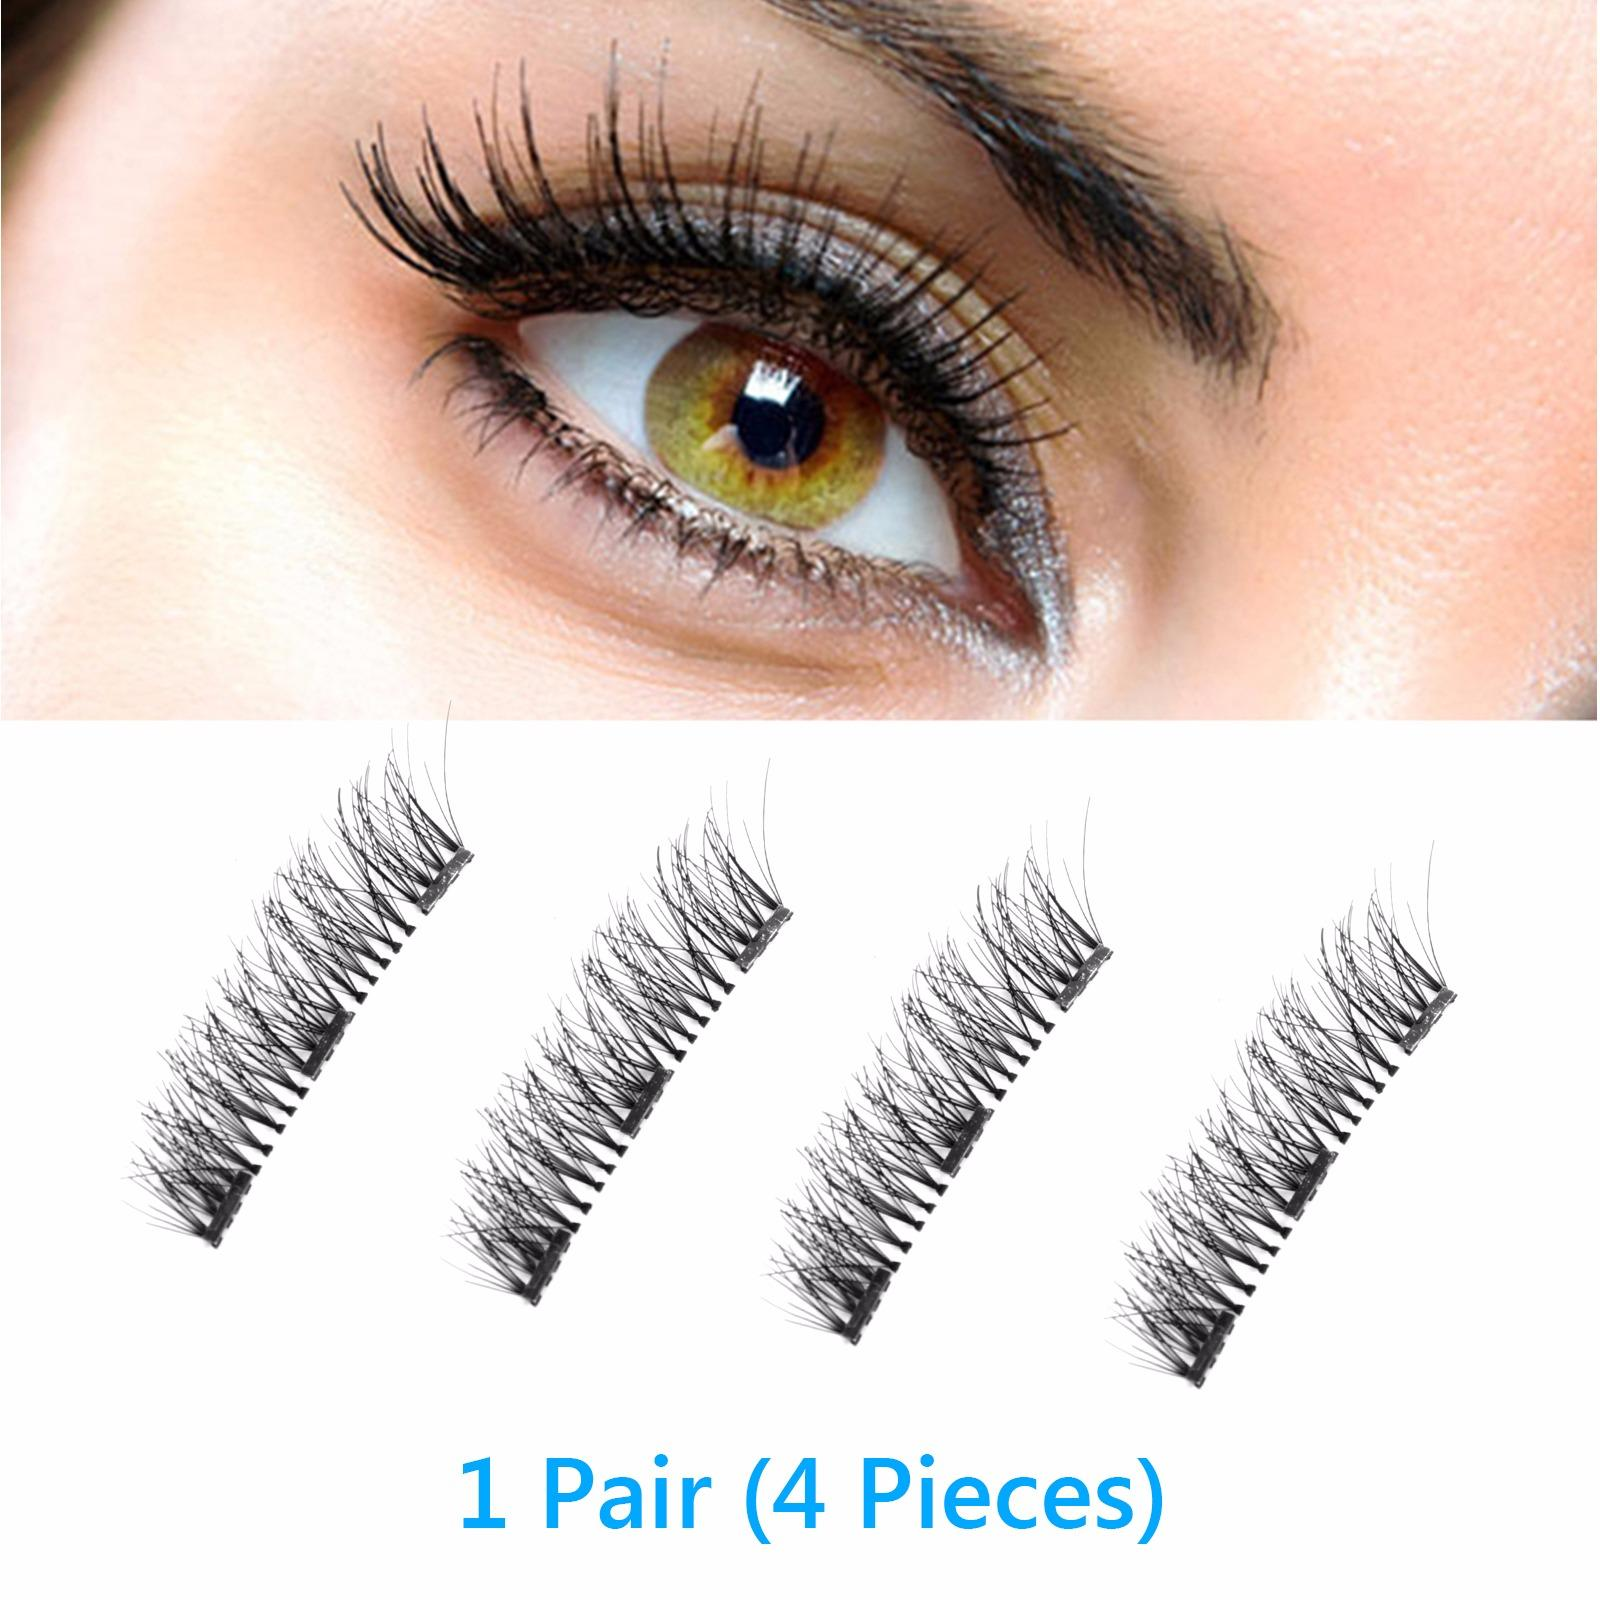 b2503c2a466 Magnetic EyeLashes False, 4Pcs/Pair Magnetic 3D Eyelashes Double Handmade Natural  False Long Eye